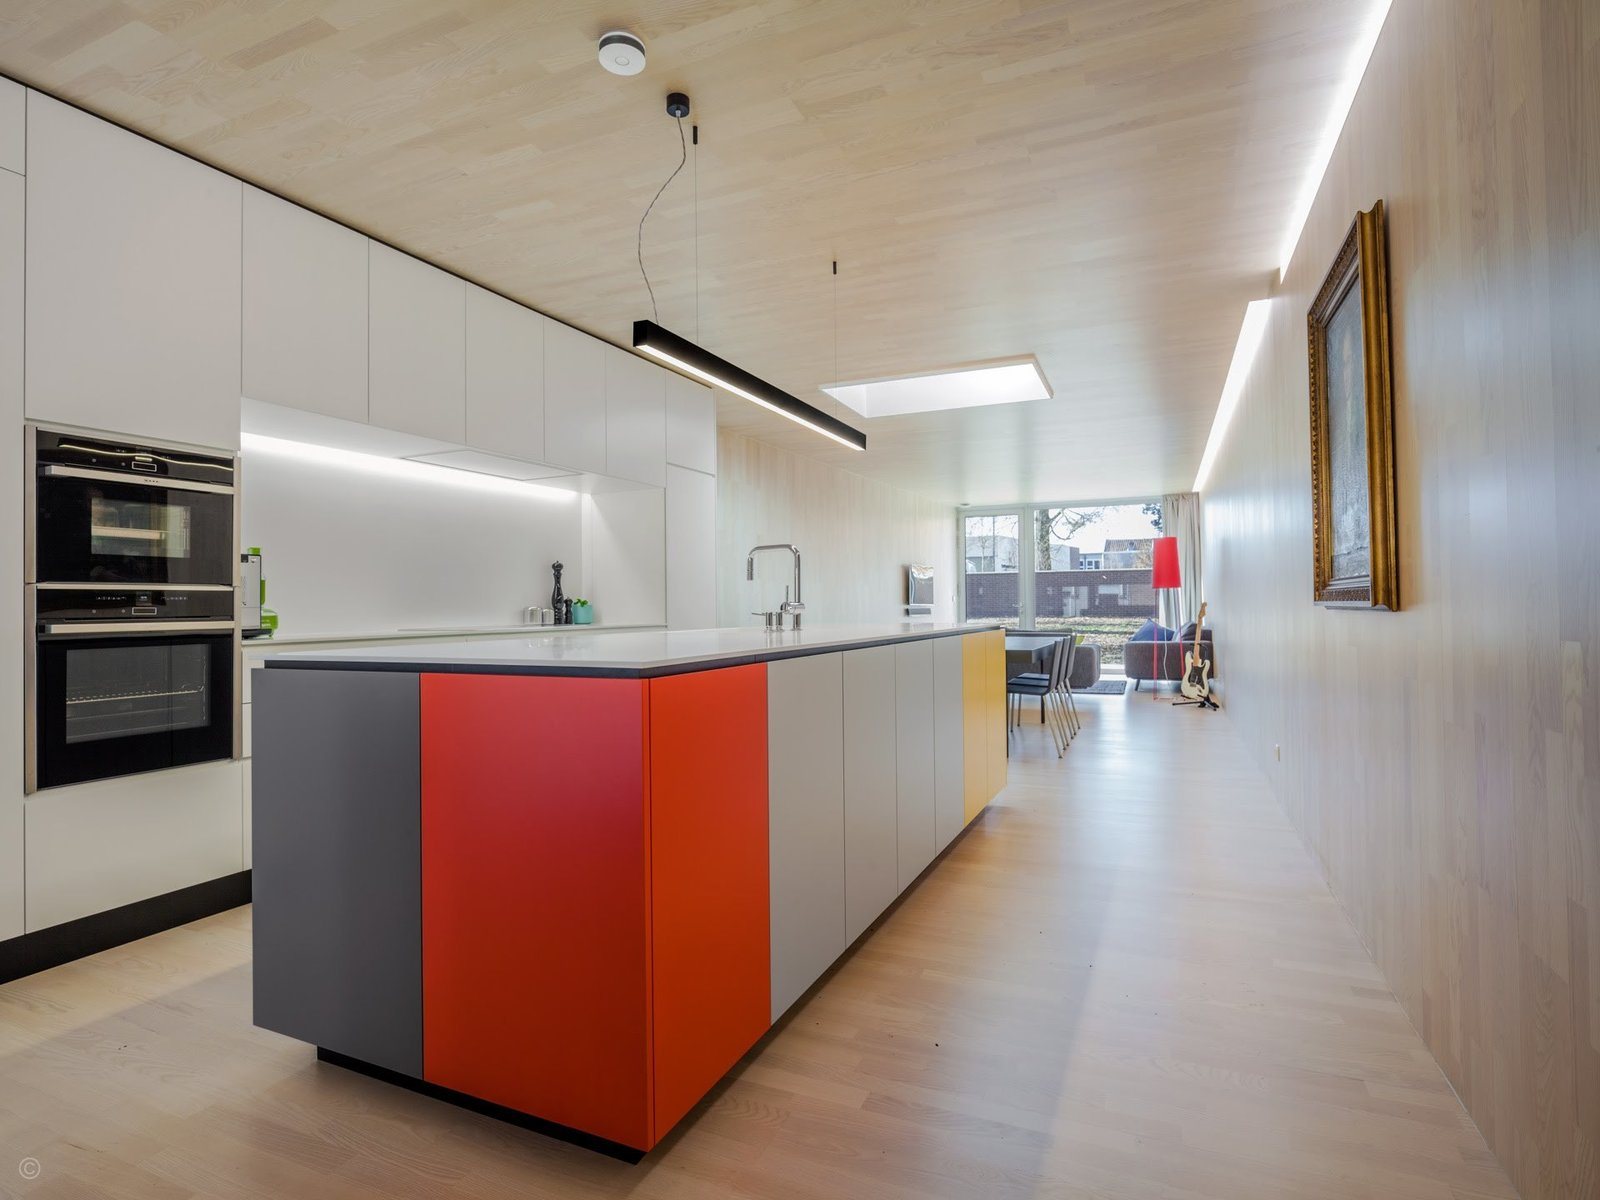 Kitchen, Recessed Lighting, Colorful Cabinet, Pendant Lighting, Light Hardwood Floor, White Cabinet, Cooktops, Dishwasher, Refrigerator, and Drop In Sink  Private House and Architecture Office